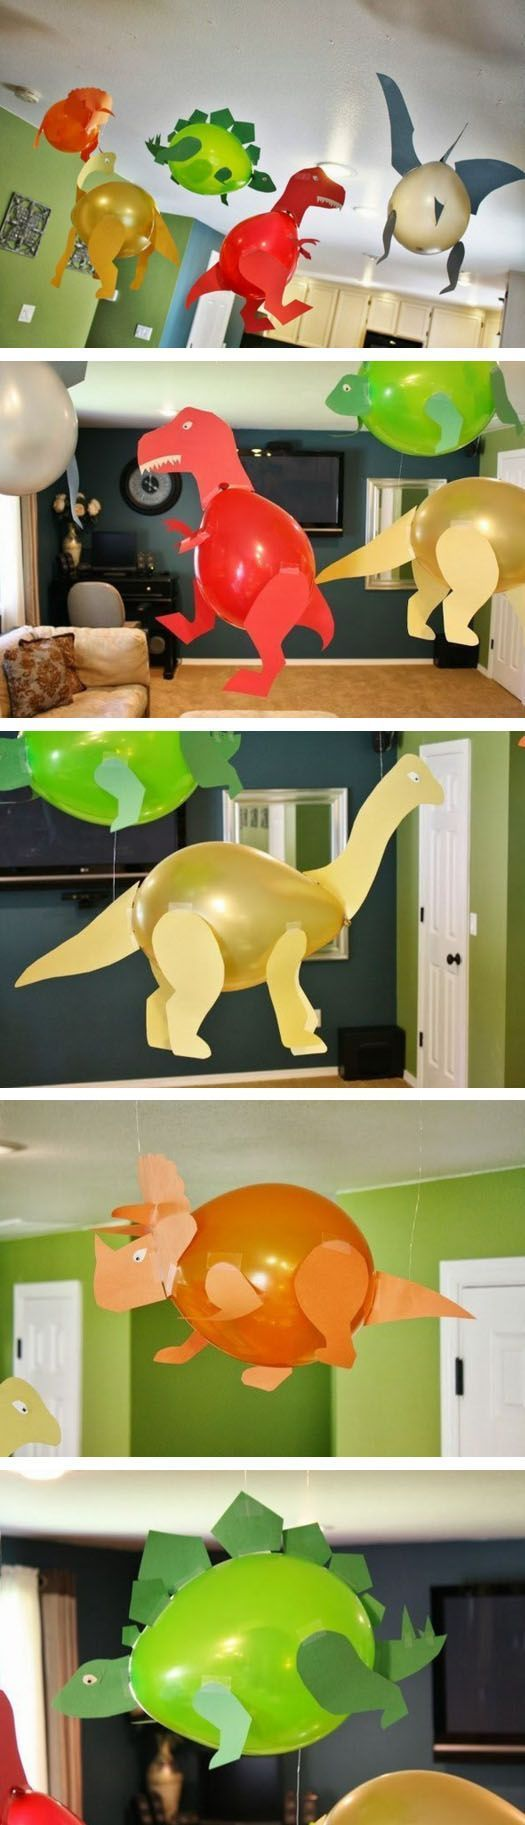 Ballons and paper is all you need to make dinosaur home decor for kids party.